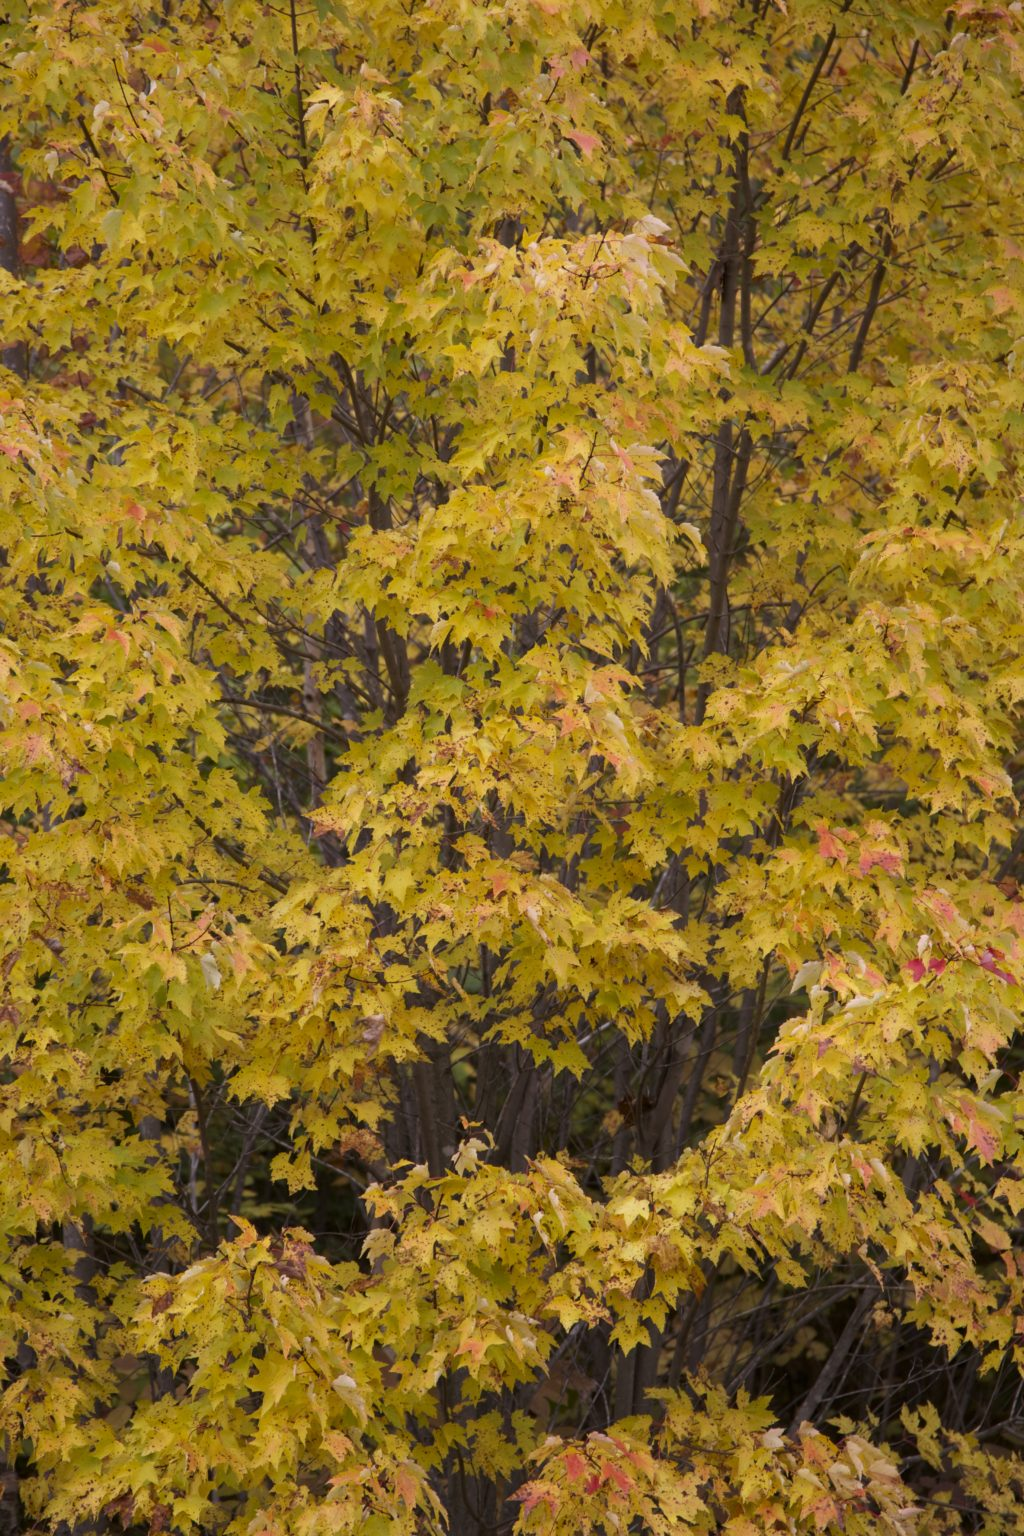 Wall of Yellow Foliage